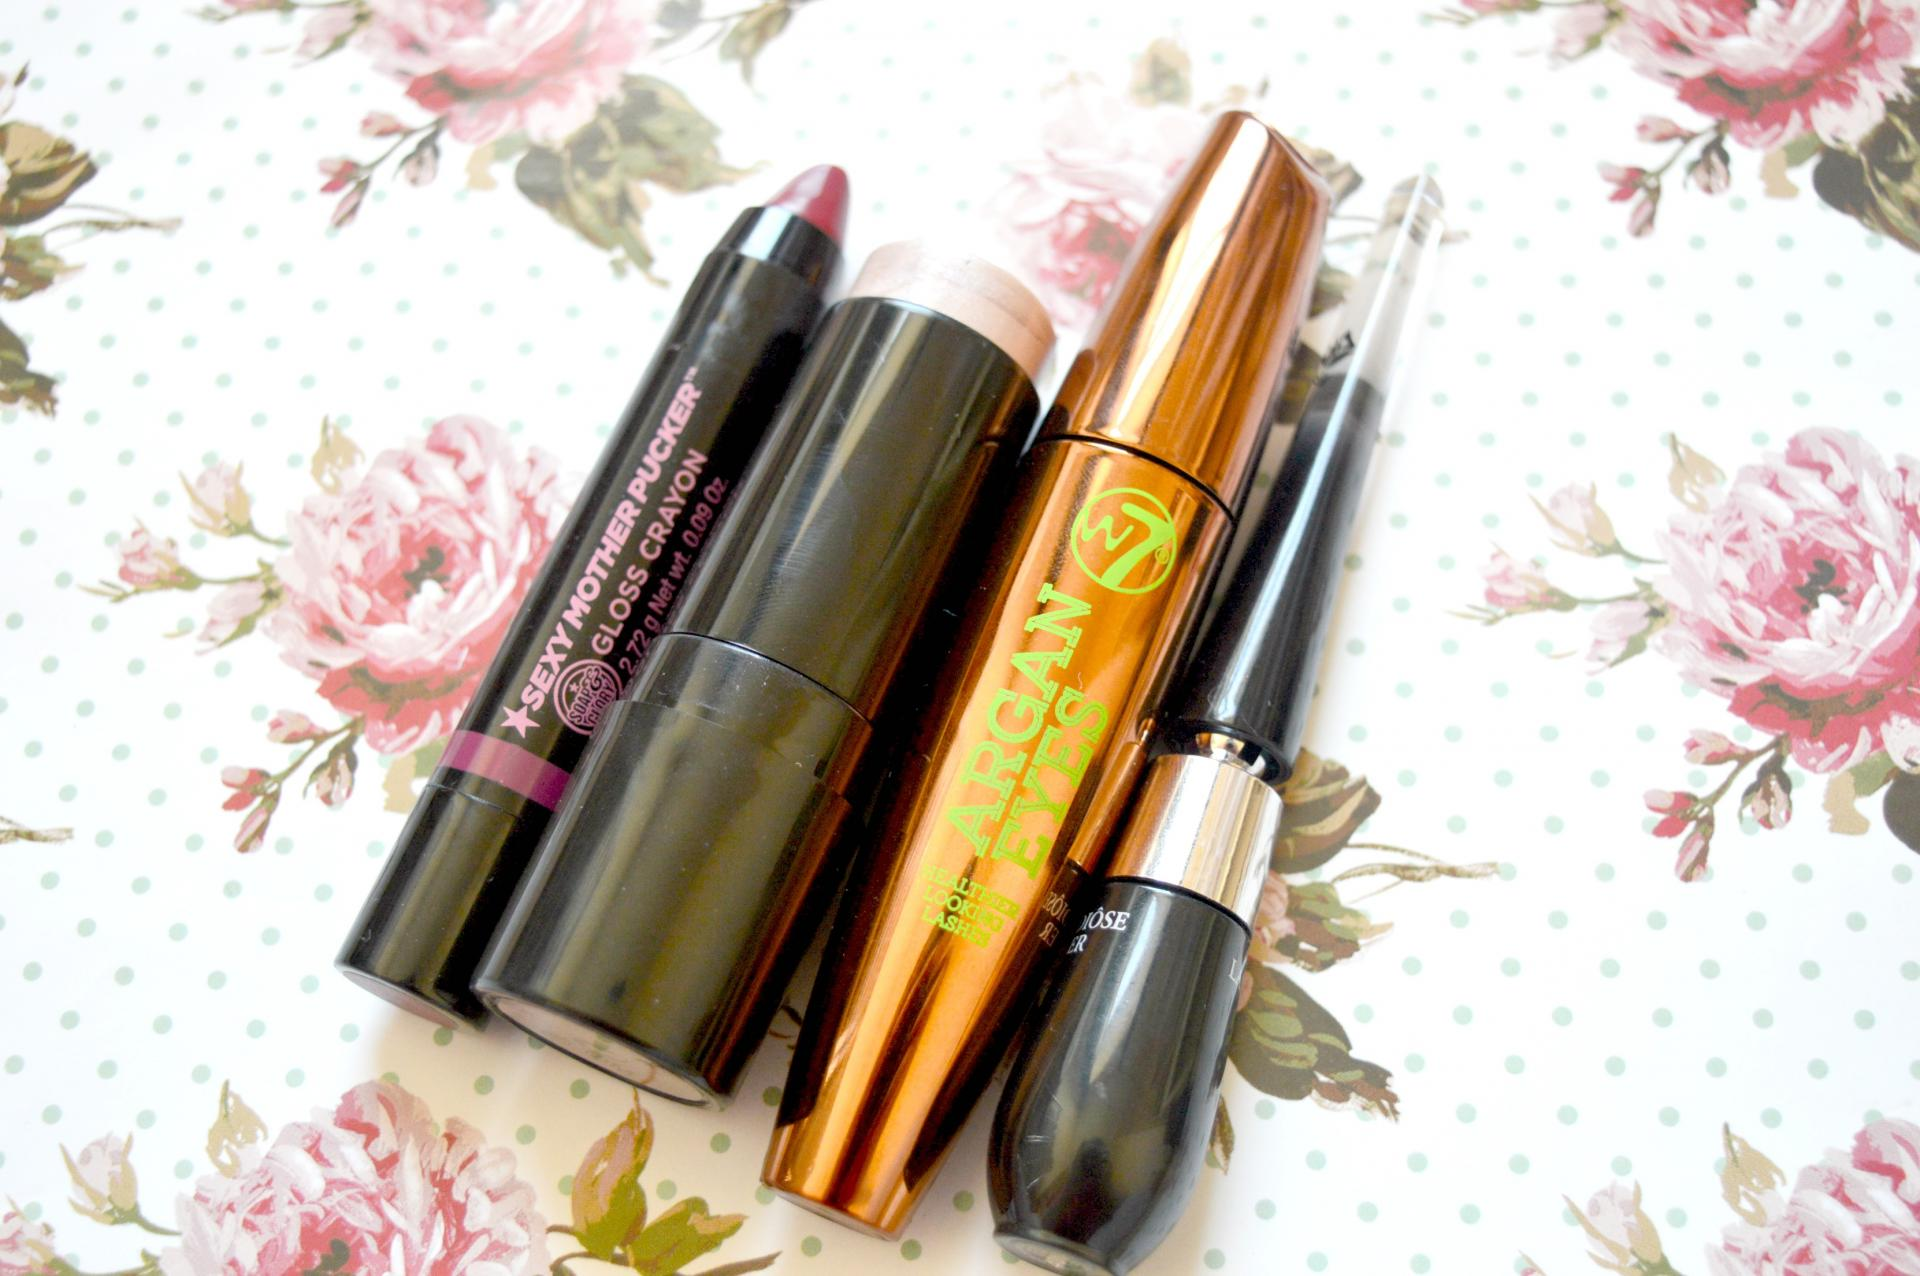 July 2016 Favourites | Soap and Glory Sexy Mother Pucker Gloss Crayon in Raplumzel, Soap and Glory Glow All Out Highlight and Sculpt Cheek Stick, W7 Argan Eyes Mascara and Lancome Grandiose Liner